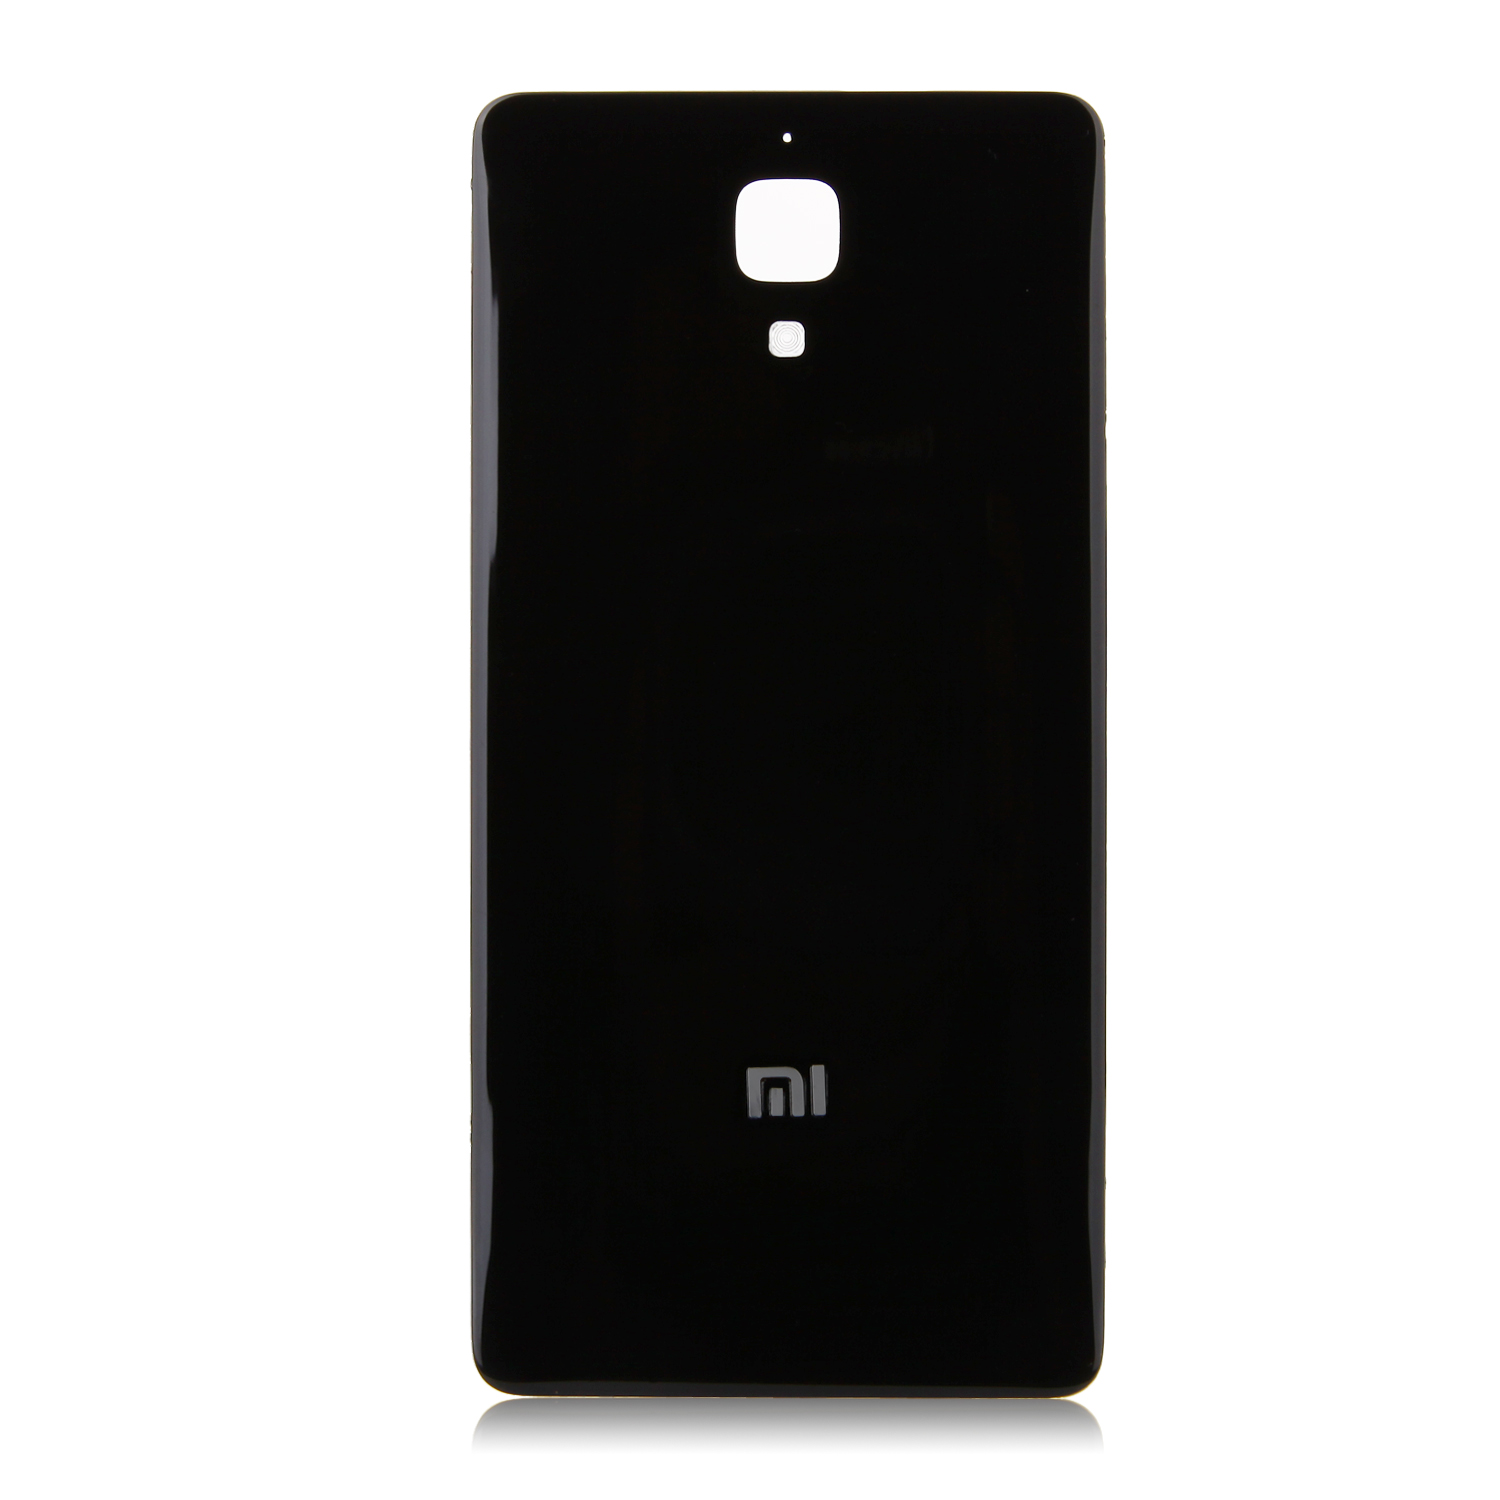 Replacement Battery Cover Back Case for XIAOMI MI4 Smartphone Black